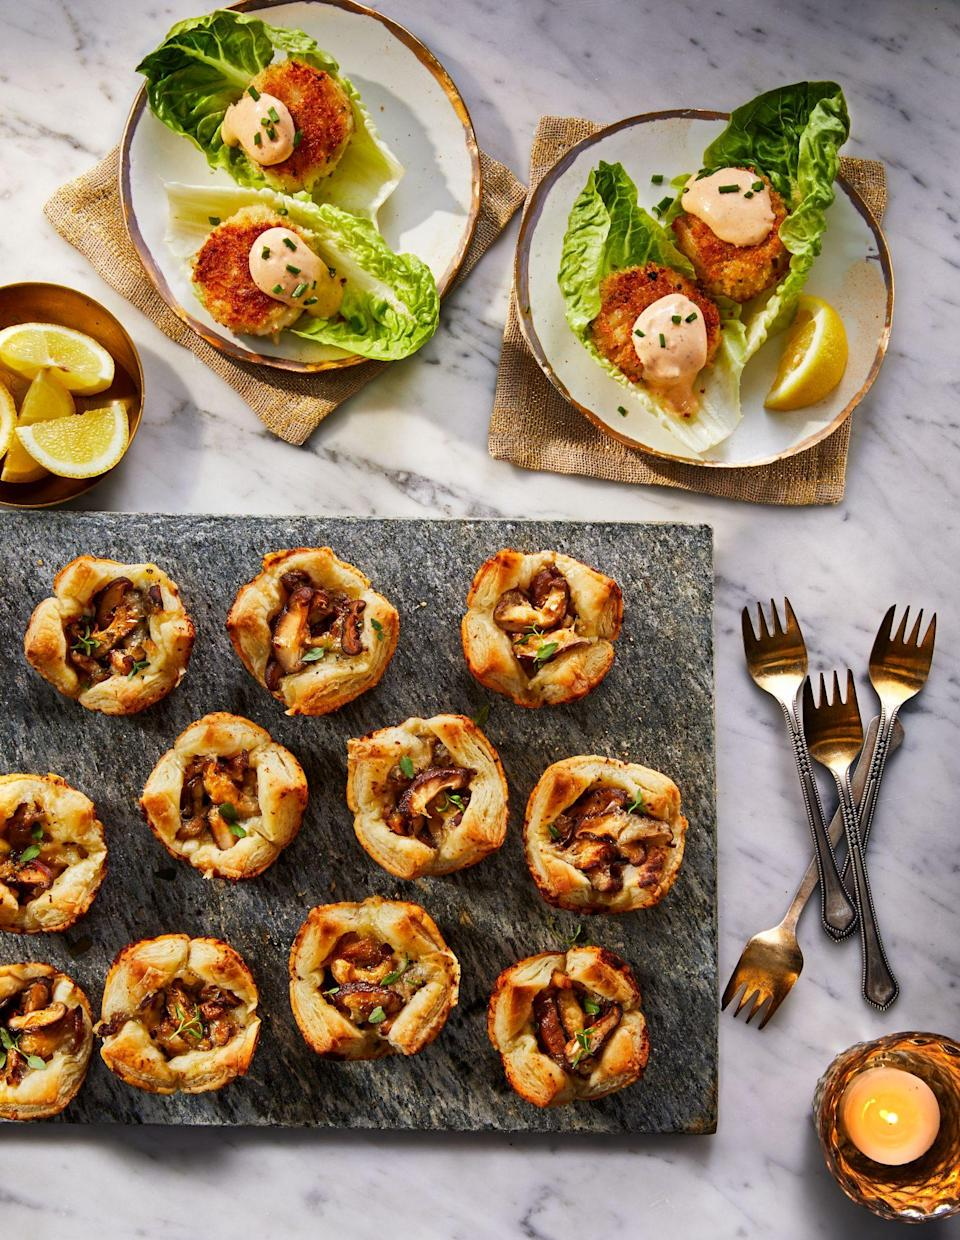 """<p><strong>Recipe: <a href=""""https://www.southernliving.com/recipes/cheesy-mushroom-tartlets"""" rel=""""sponsored noopener"""" target=""""_blank"""" data-ylk=""""slk:Cheesy Mushroom Tartlets"""" class=""""link rapid-noclick-resp"""">Cheesy Mushroom Tartlets</a></strong></p> <p>For a delicious filling without too much work, we call on chive-and-onion cream cheese for this recipe. </p>"""